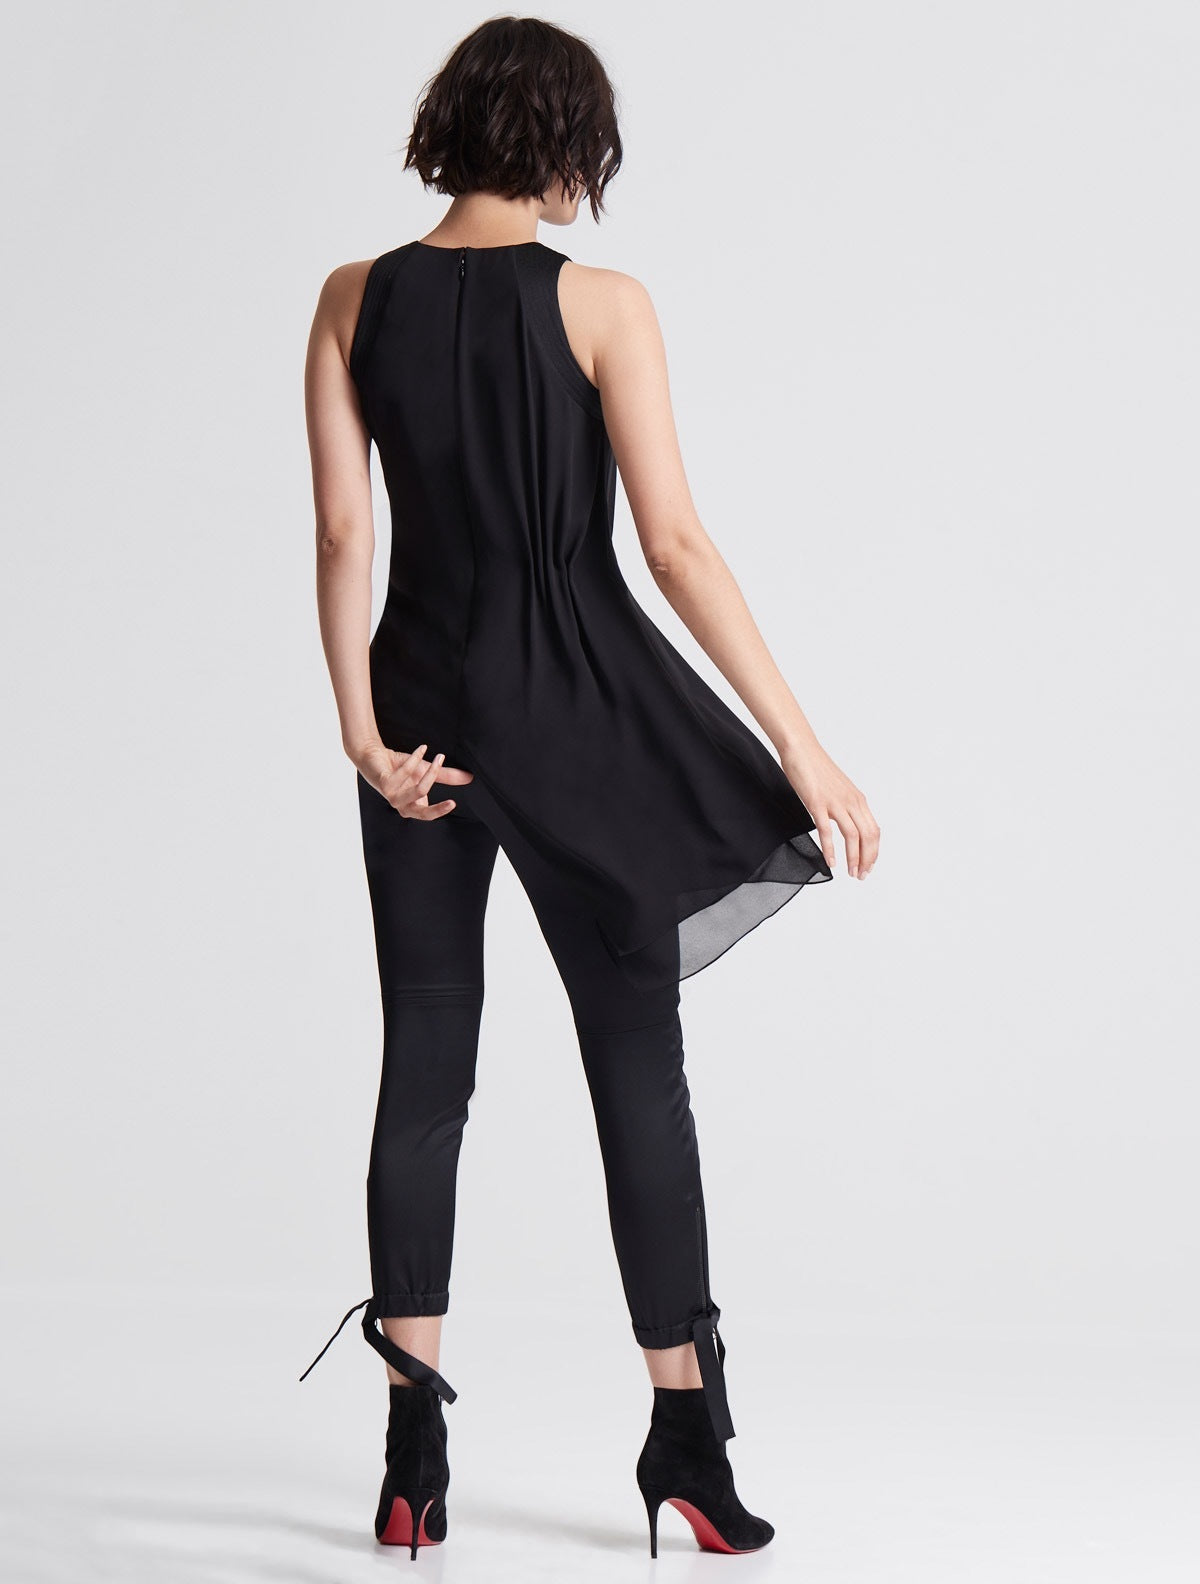 SLEVELESS ASYMMETRIC DRAPE TOP - Halston